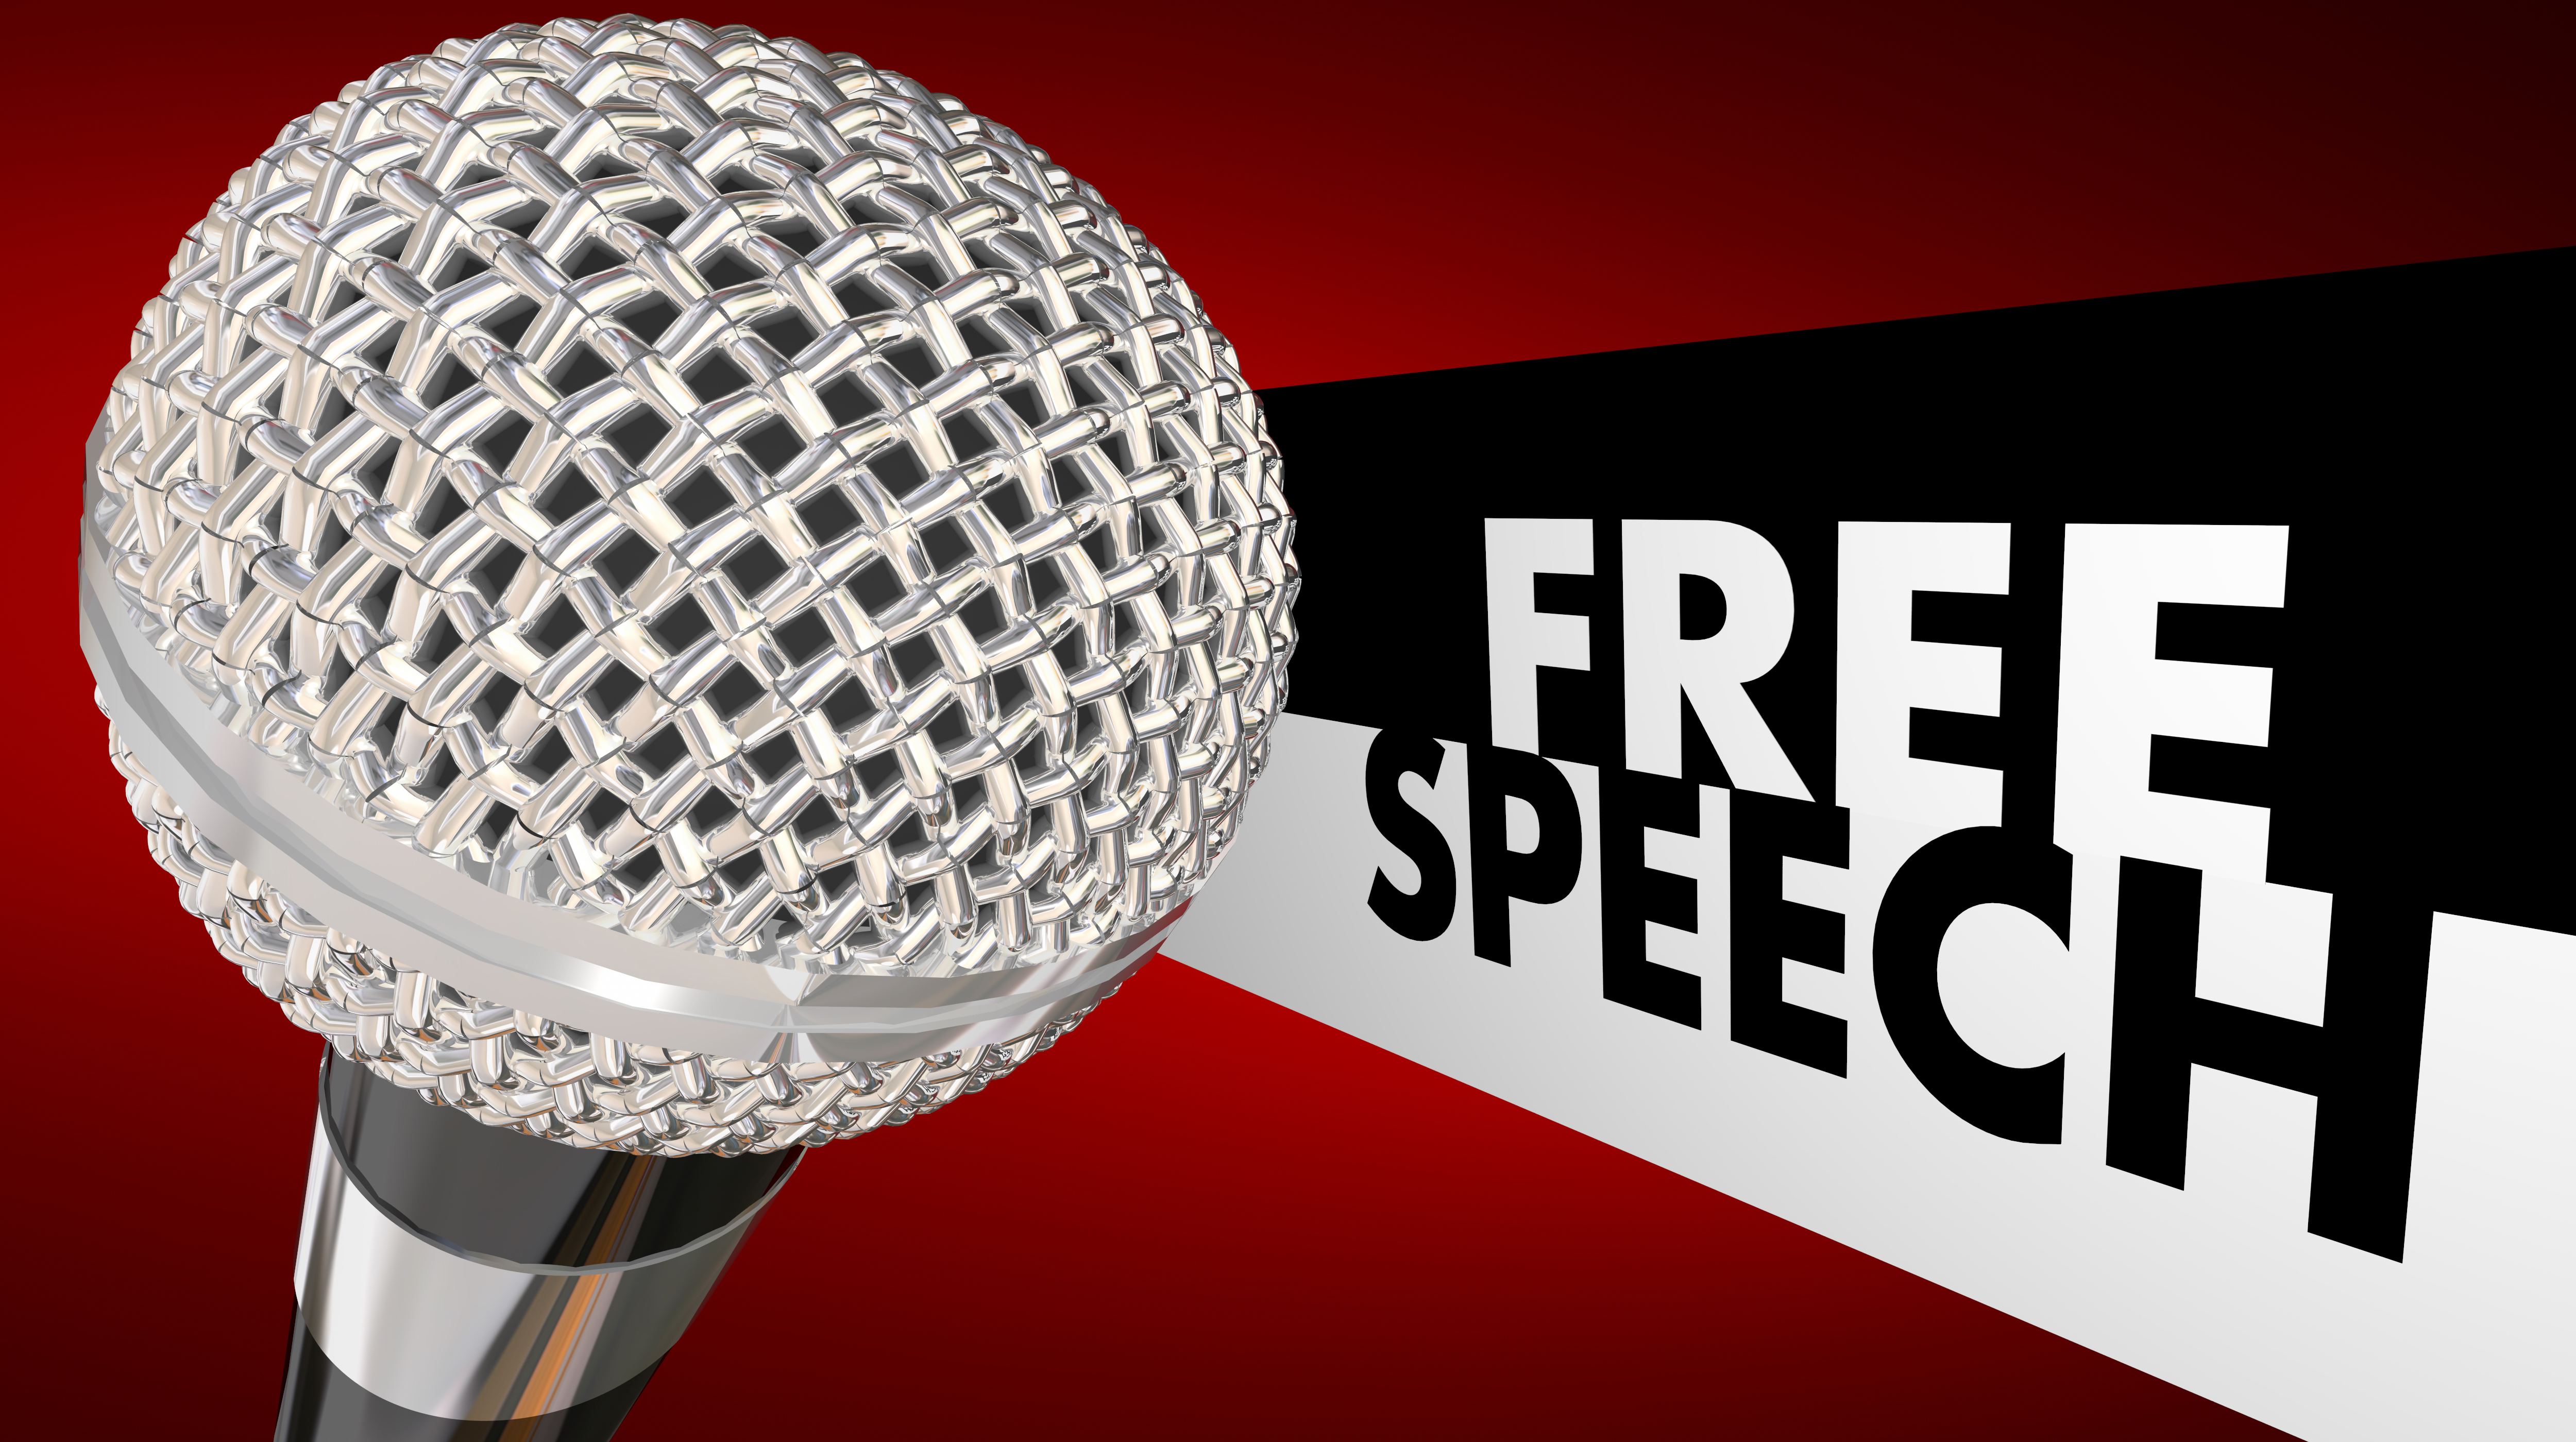 employer retaliation for free speech the limits of the first